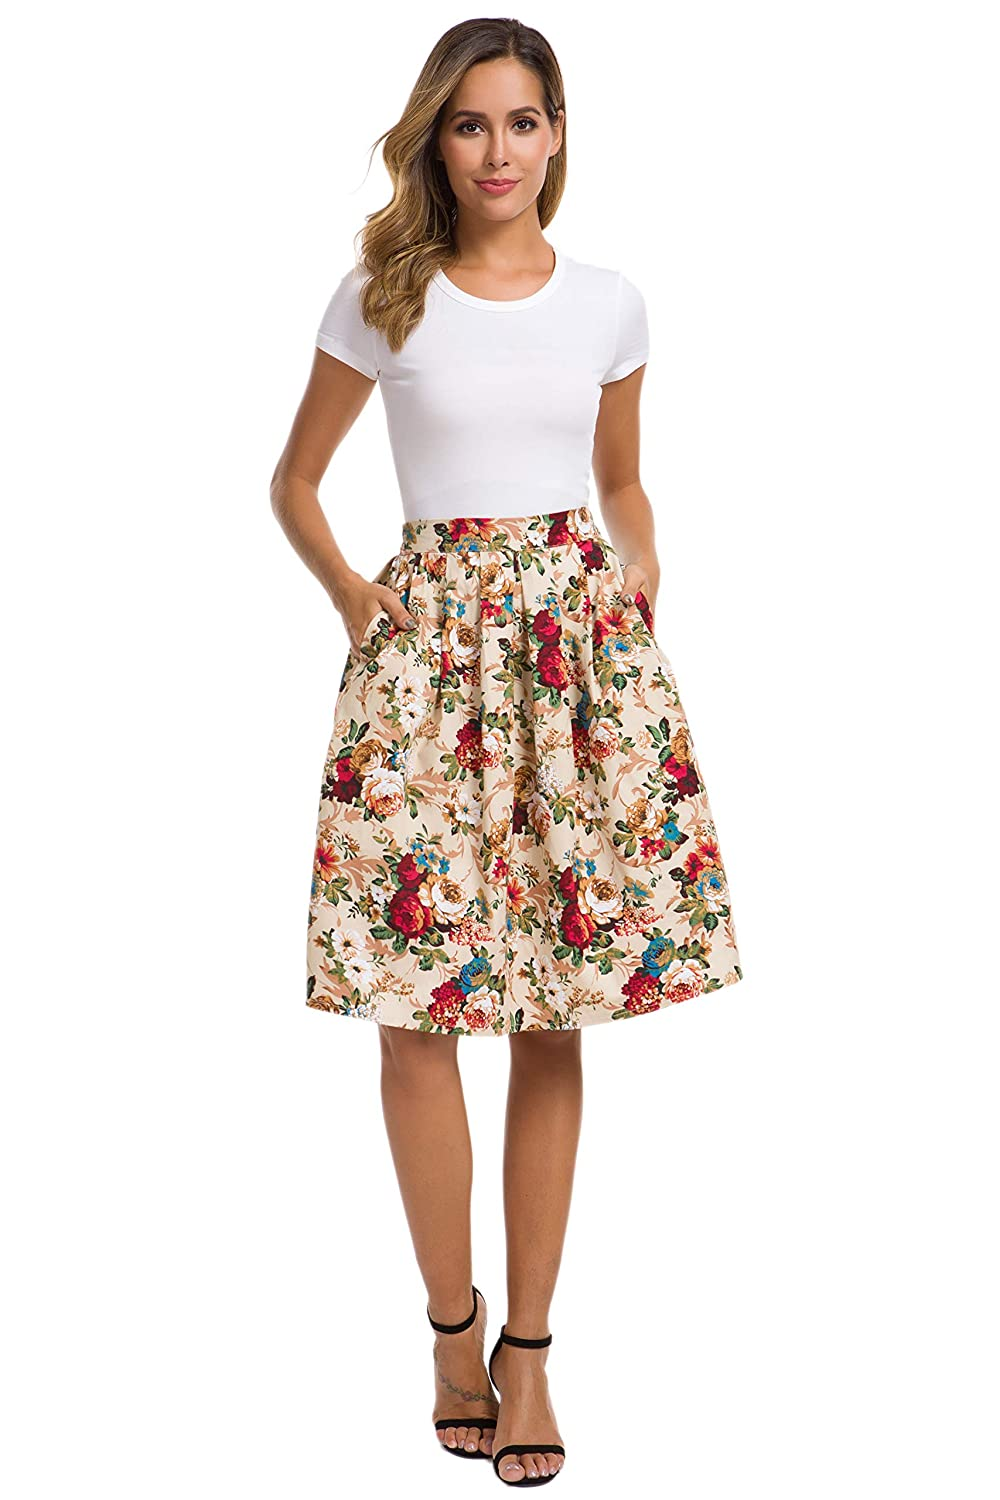 9f7a1b9fd78a HIKA Women's Retro High Elastic Waist Flare Pleated A-line Midi Skirt at  Amazon Women's Clothing store: